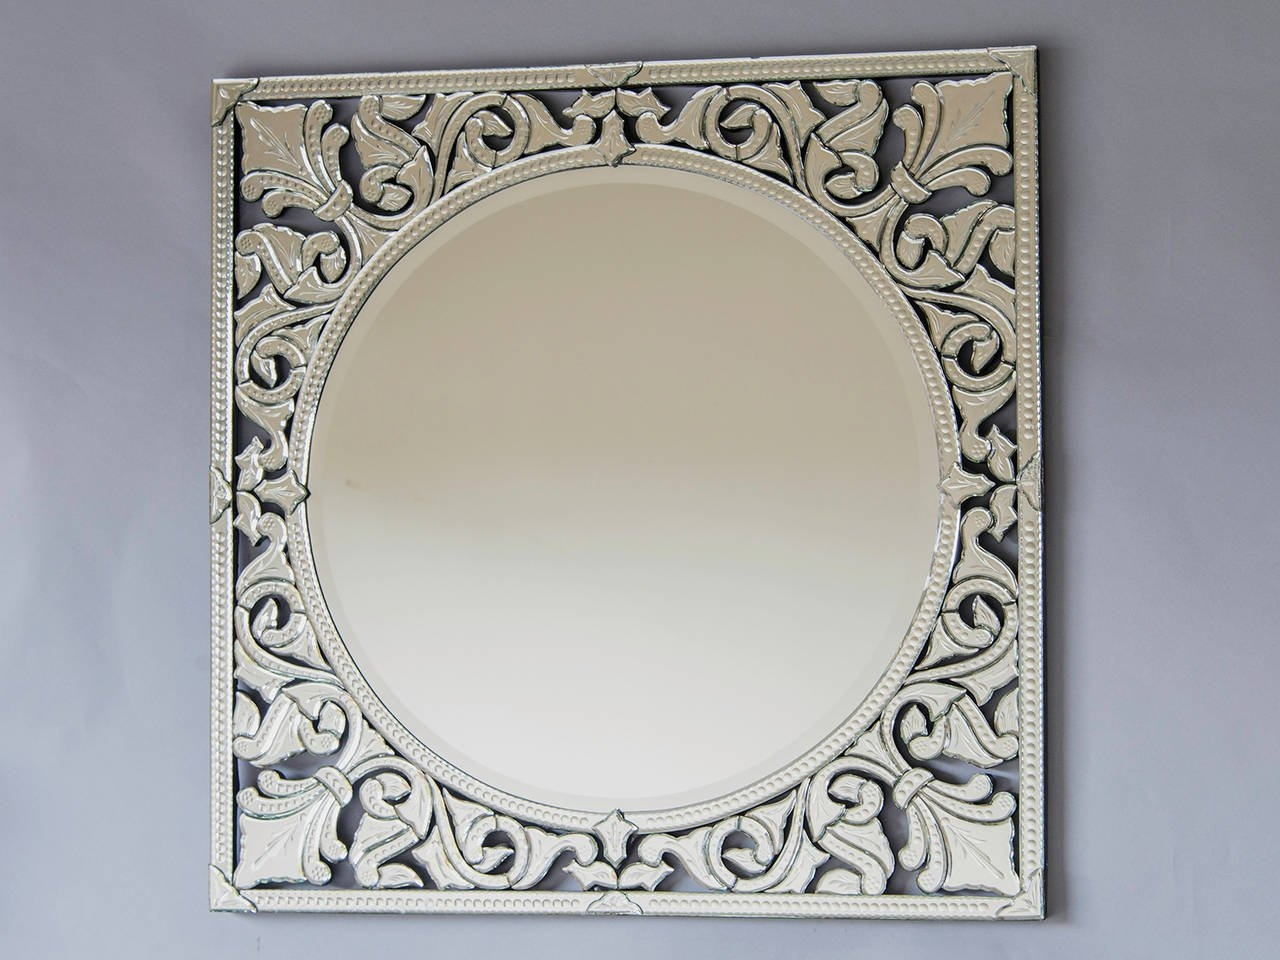 Pair Of Square Venetian Mirrors Italy At 1stdibs Within Square Venetian Mirror (Image 11 of 15)